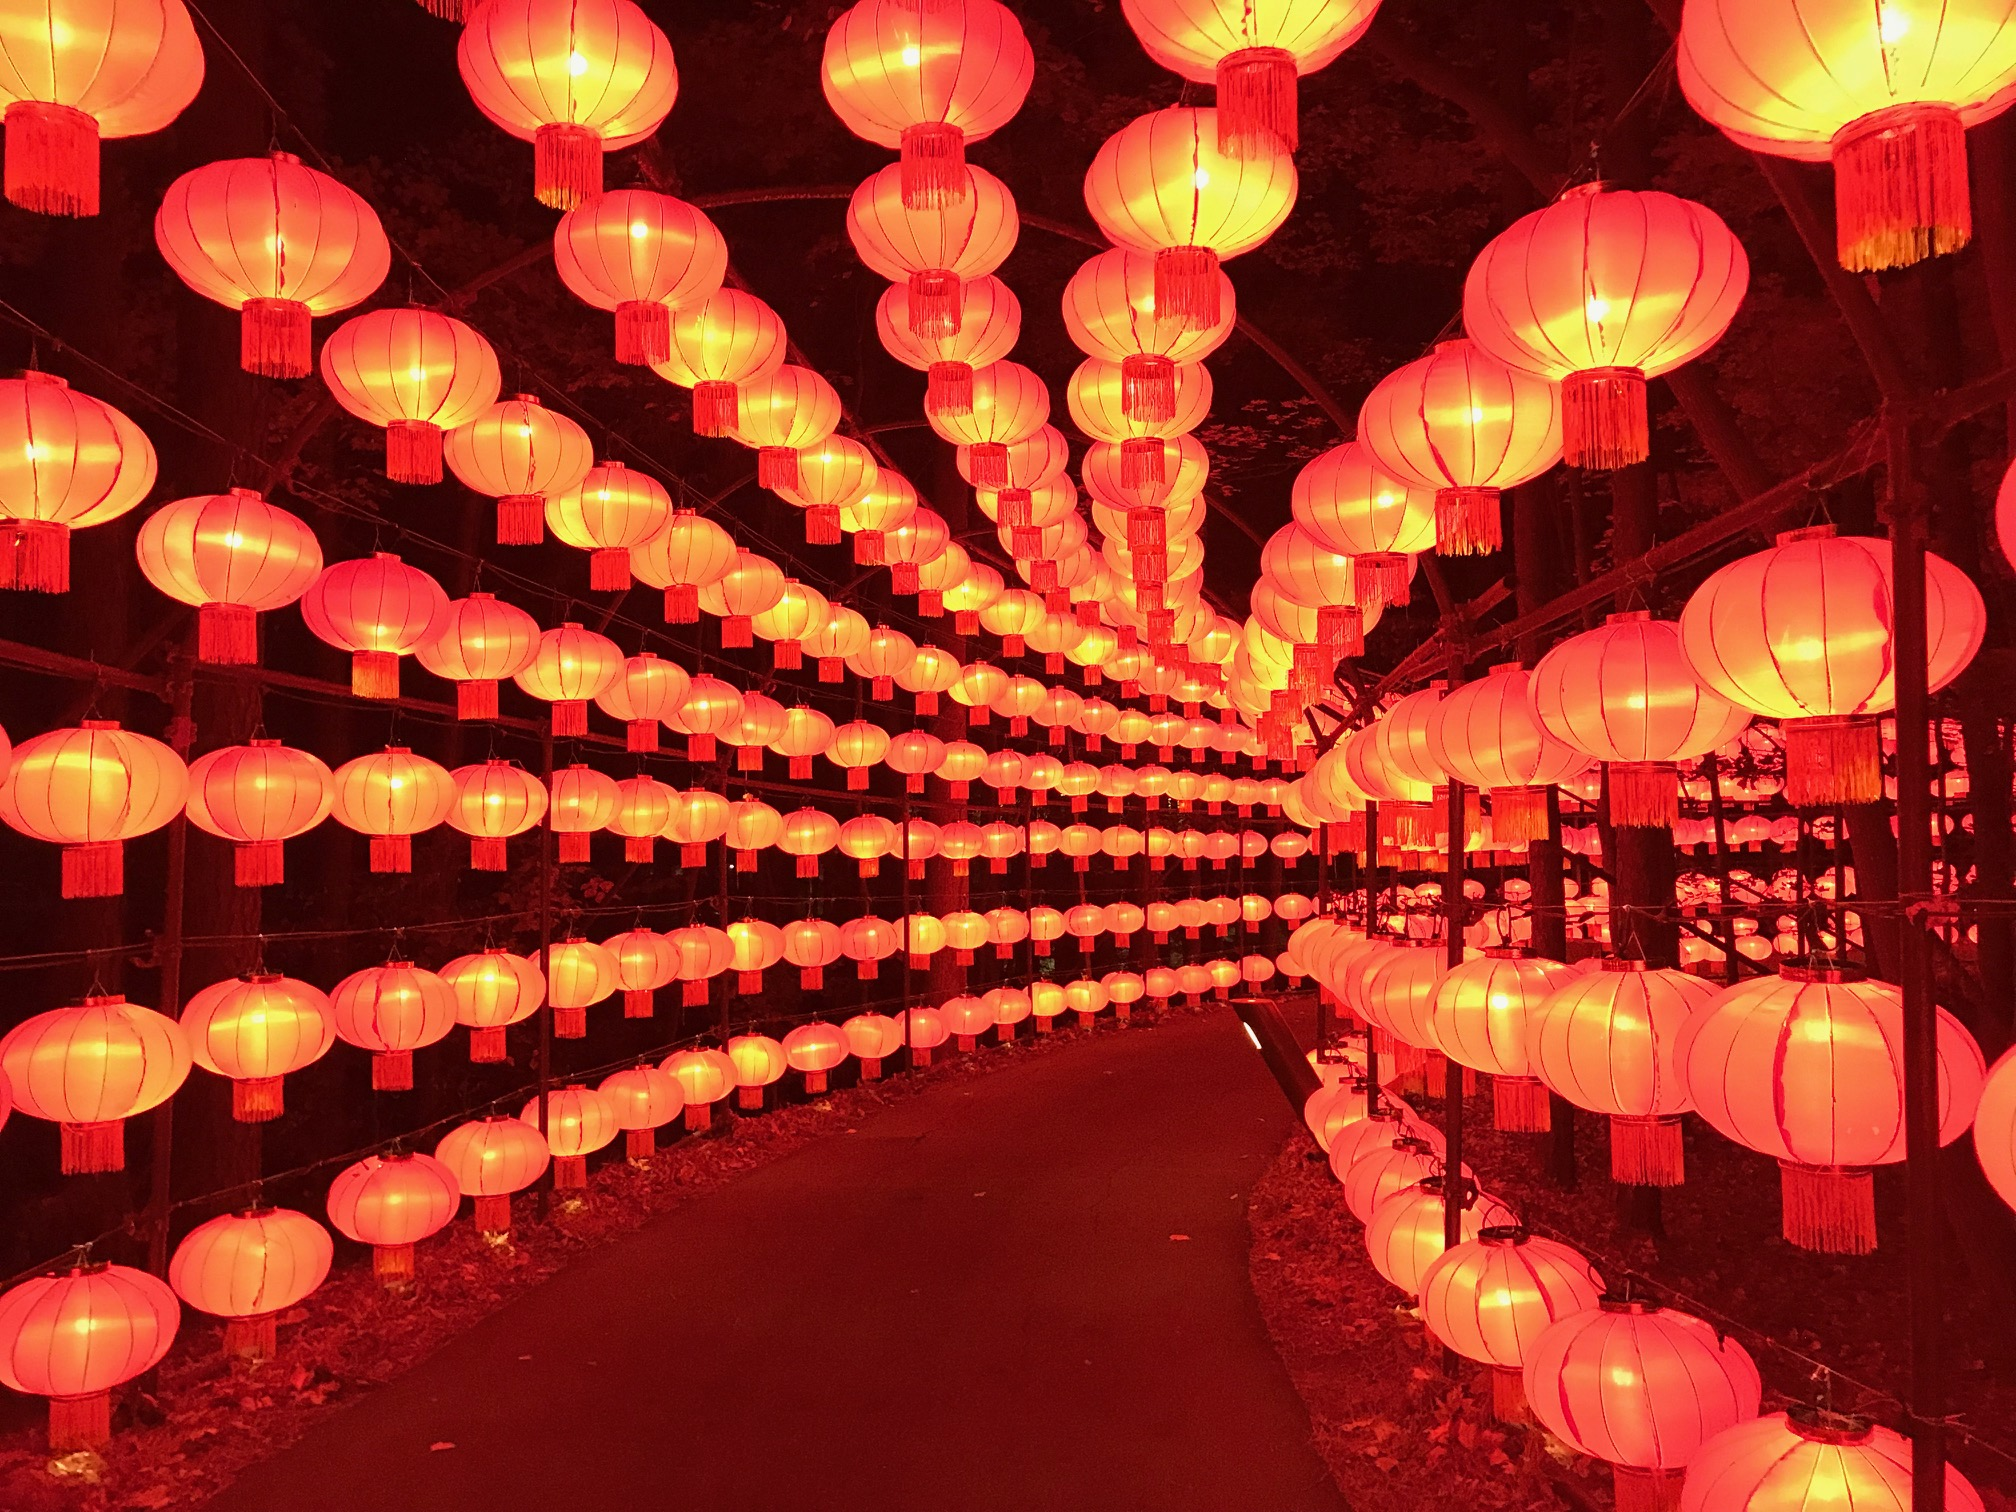 lantern festival_NC Chinese Lantern Festival lights up Cary | abc11.com